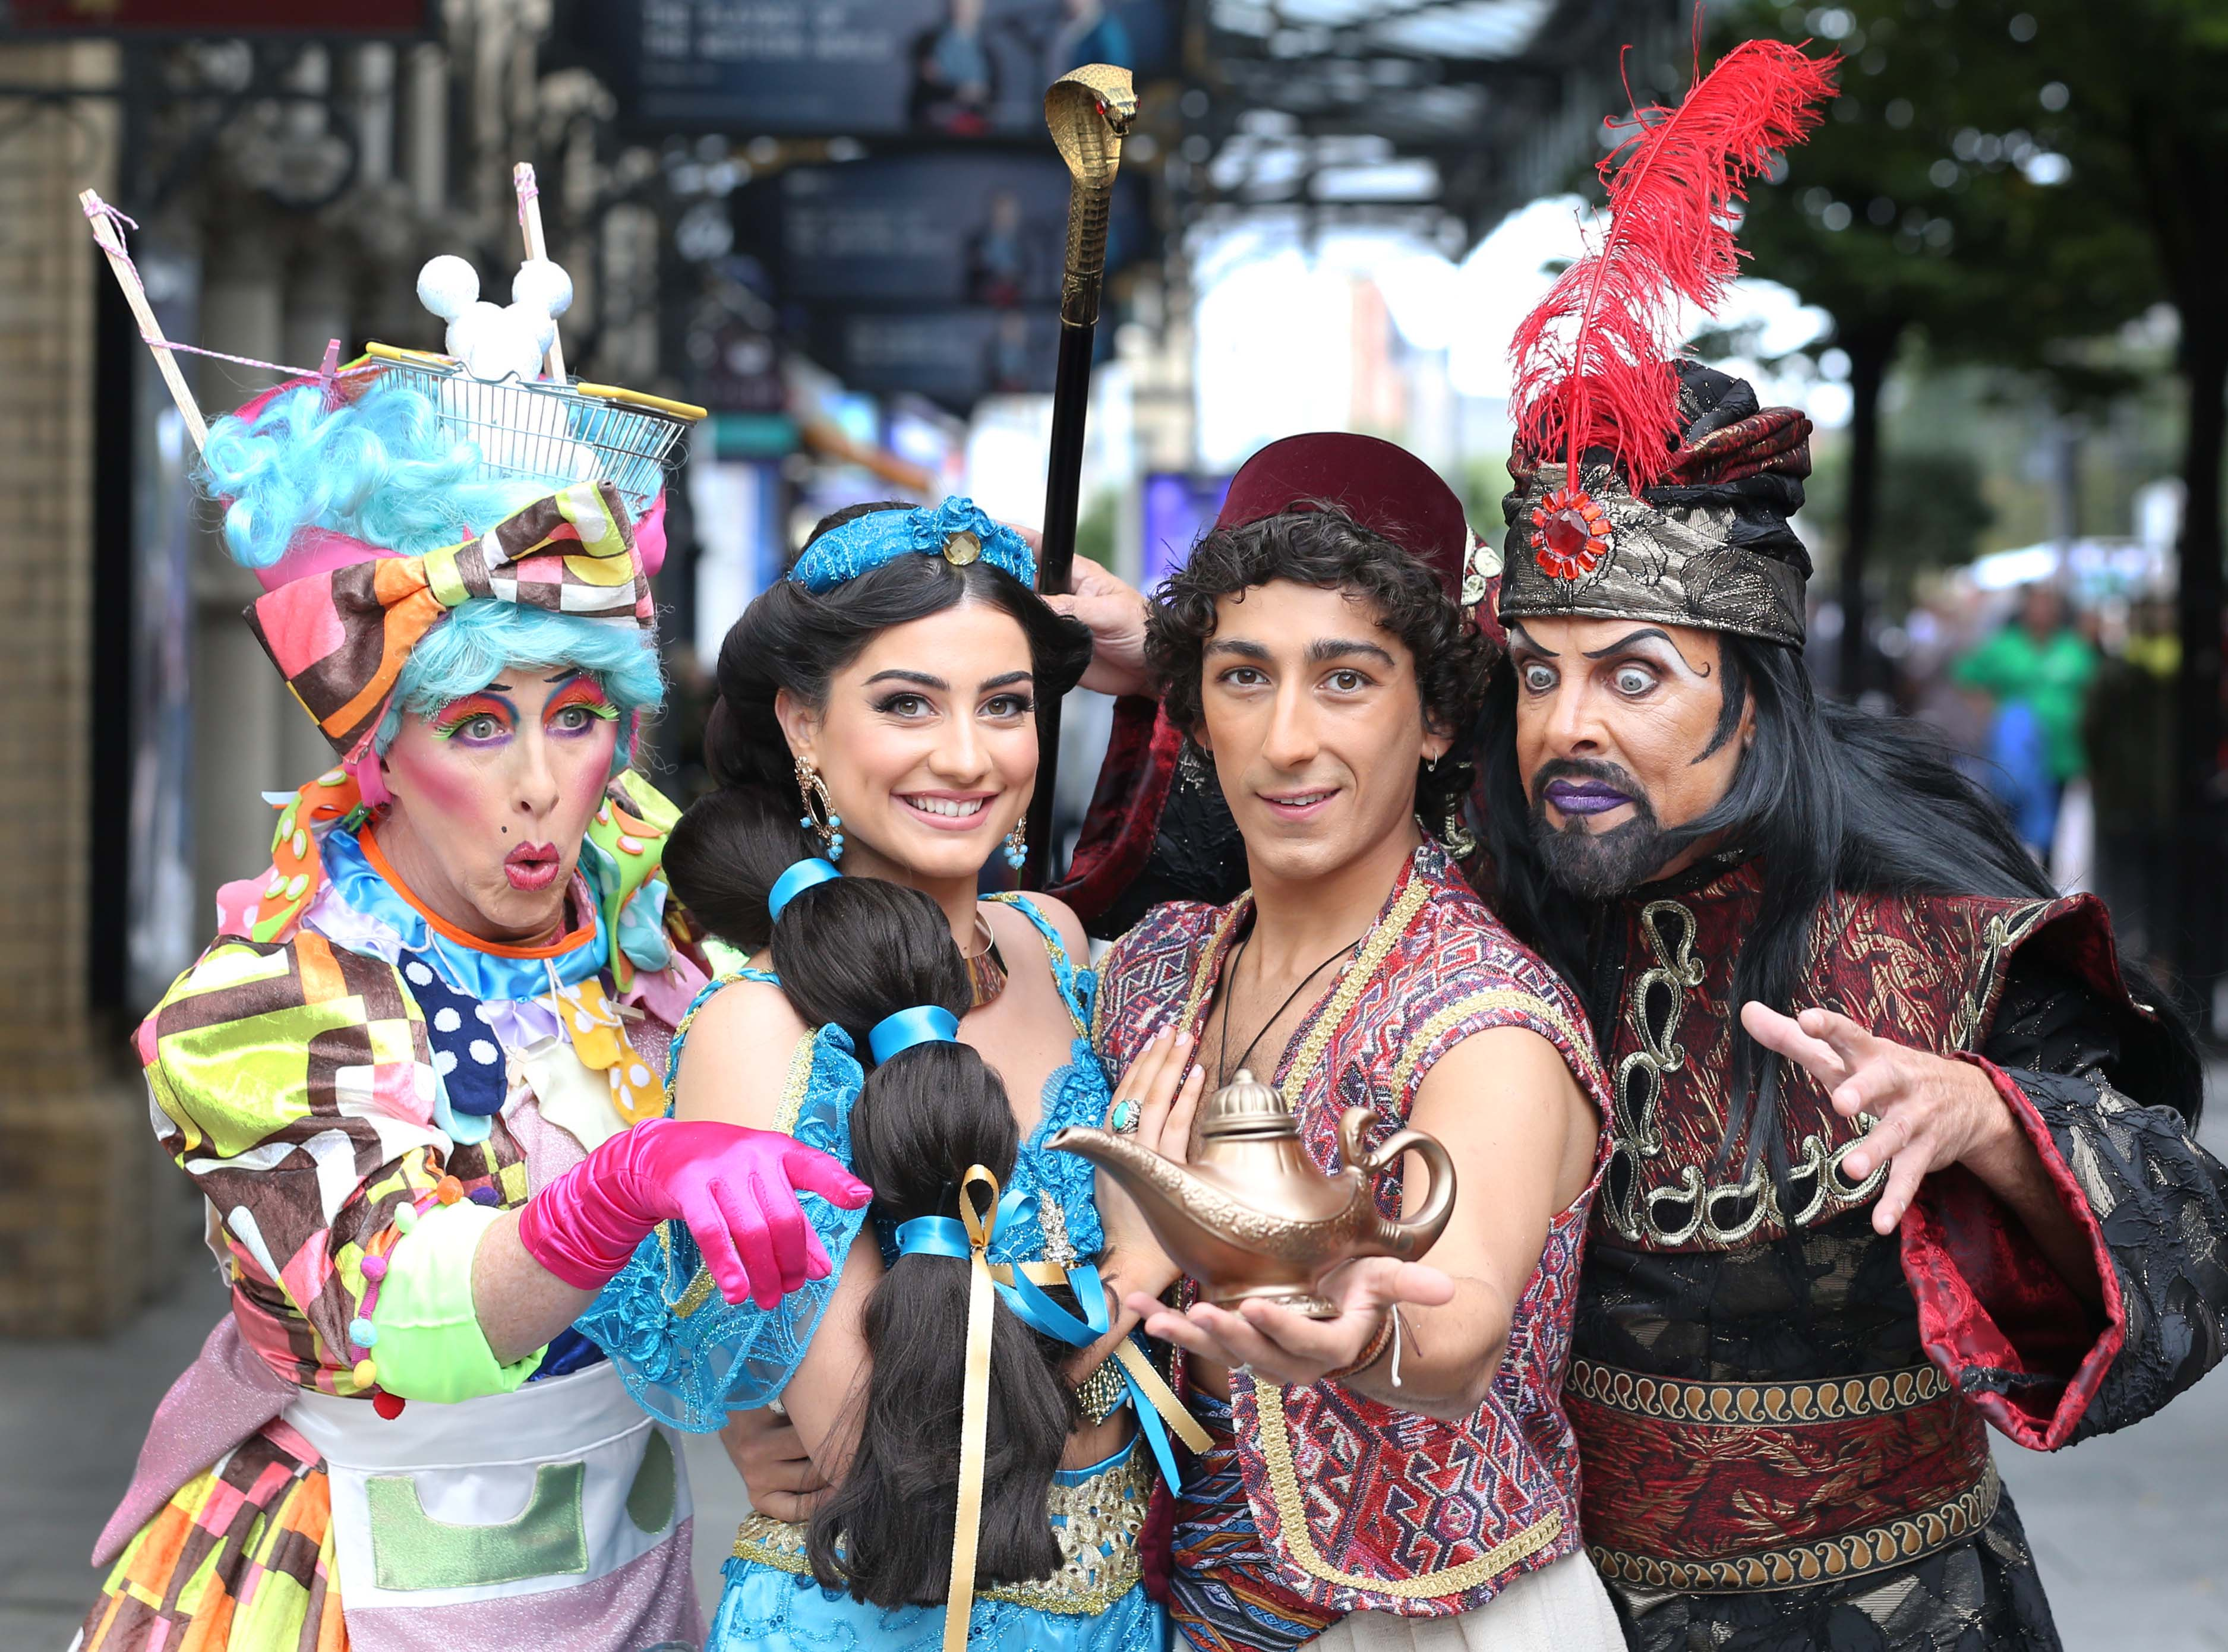 The stellar cast of Aladdin in full costume as they officially launch this year's Gaiety Panto which opens at the Gaiety Theatre from 24 November until 5 January.  Pictured are a stellar cast of favourites including Joe Conlan as 'Widow Twankey' and Nicholas Grennell as 'Abanazer' and the Gaiety Panto also introduce to you West End talent Julian Capolei as 'Aladdin' and the gorgeous 'Suzie Seweify' as 'Princess Jasmine'. Photo: Sasko Lazarov/Photocall Ireland